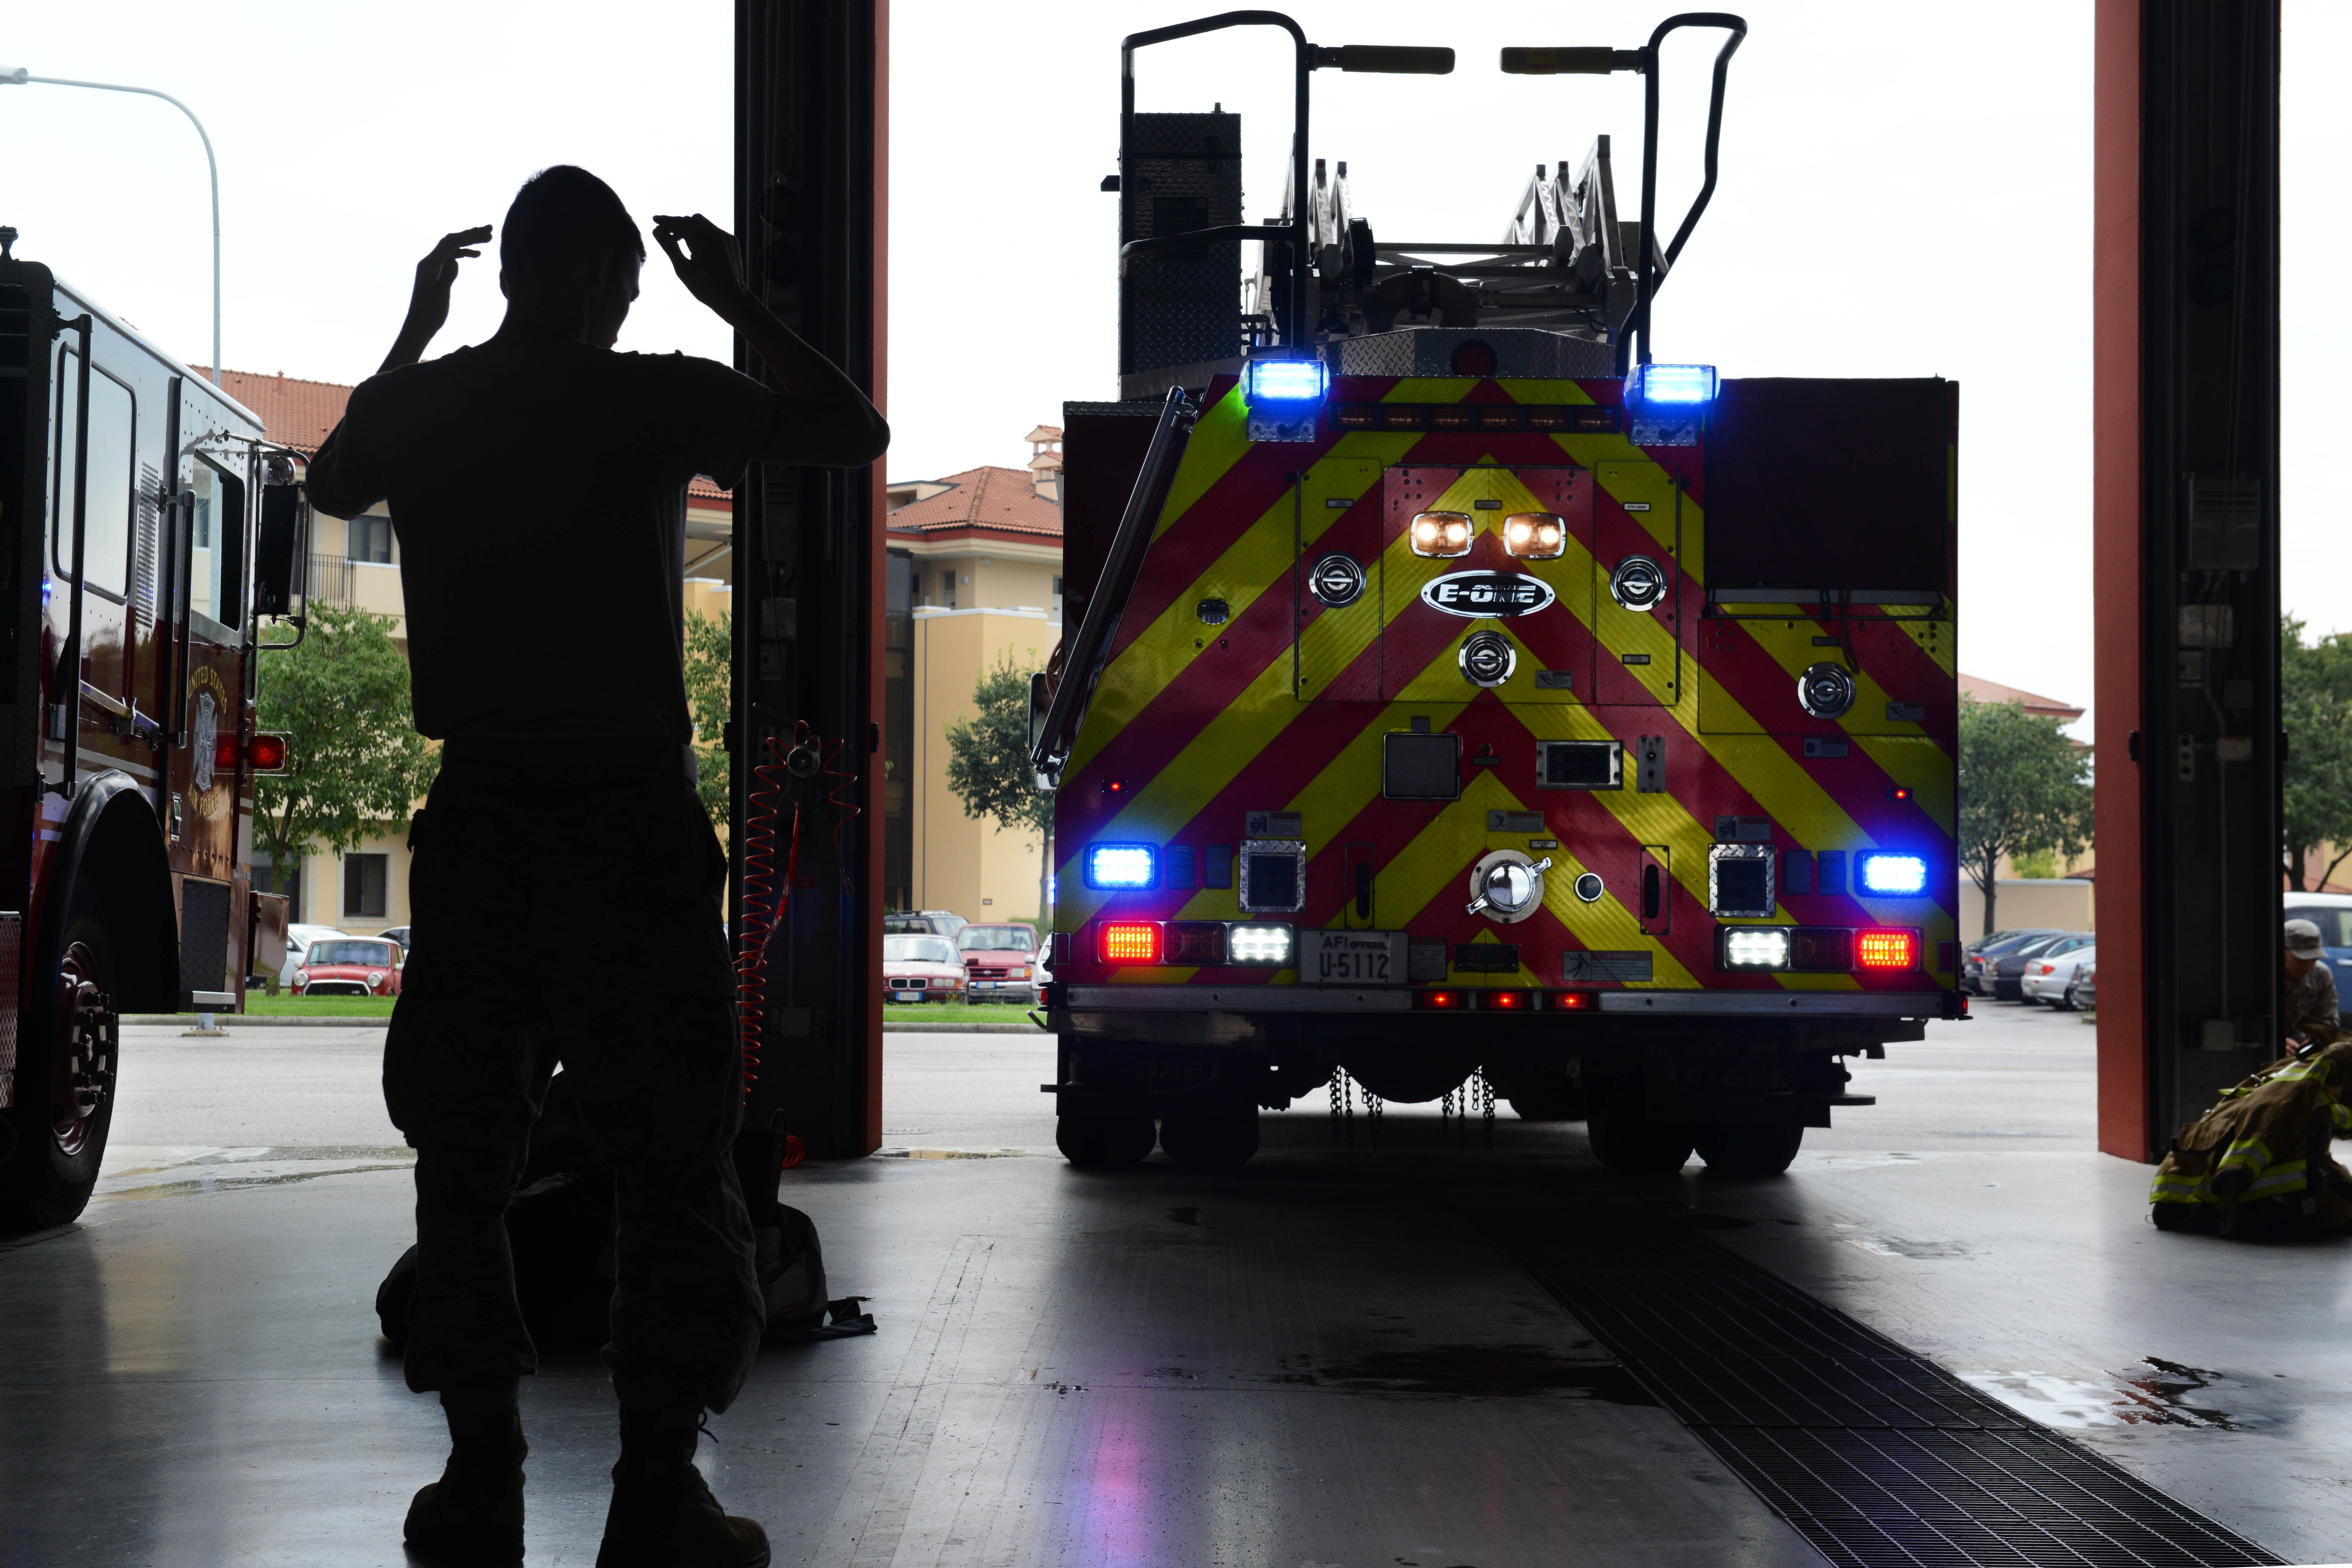 During an operations check, Airman 1st Class Joseph Cappel, 31st Civil Engineer Squadron firefighter, guides a fire truck into the Aviano firehouse, July 29, 2014, at Aviano Air Base, Italy. At the beginning of a 24-hour shift, firefighters conduct operations checks on the trucks to always be prepared for when they receive an emergency call. (U.S. Air Force photo/Airman 1st Class Ryan Conroy)